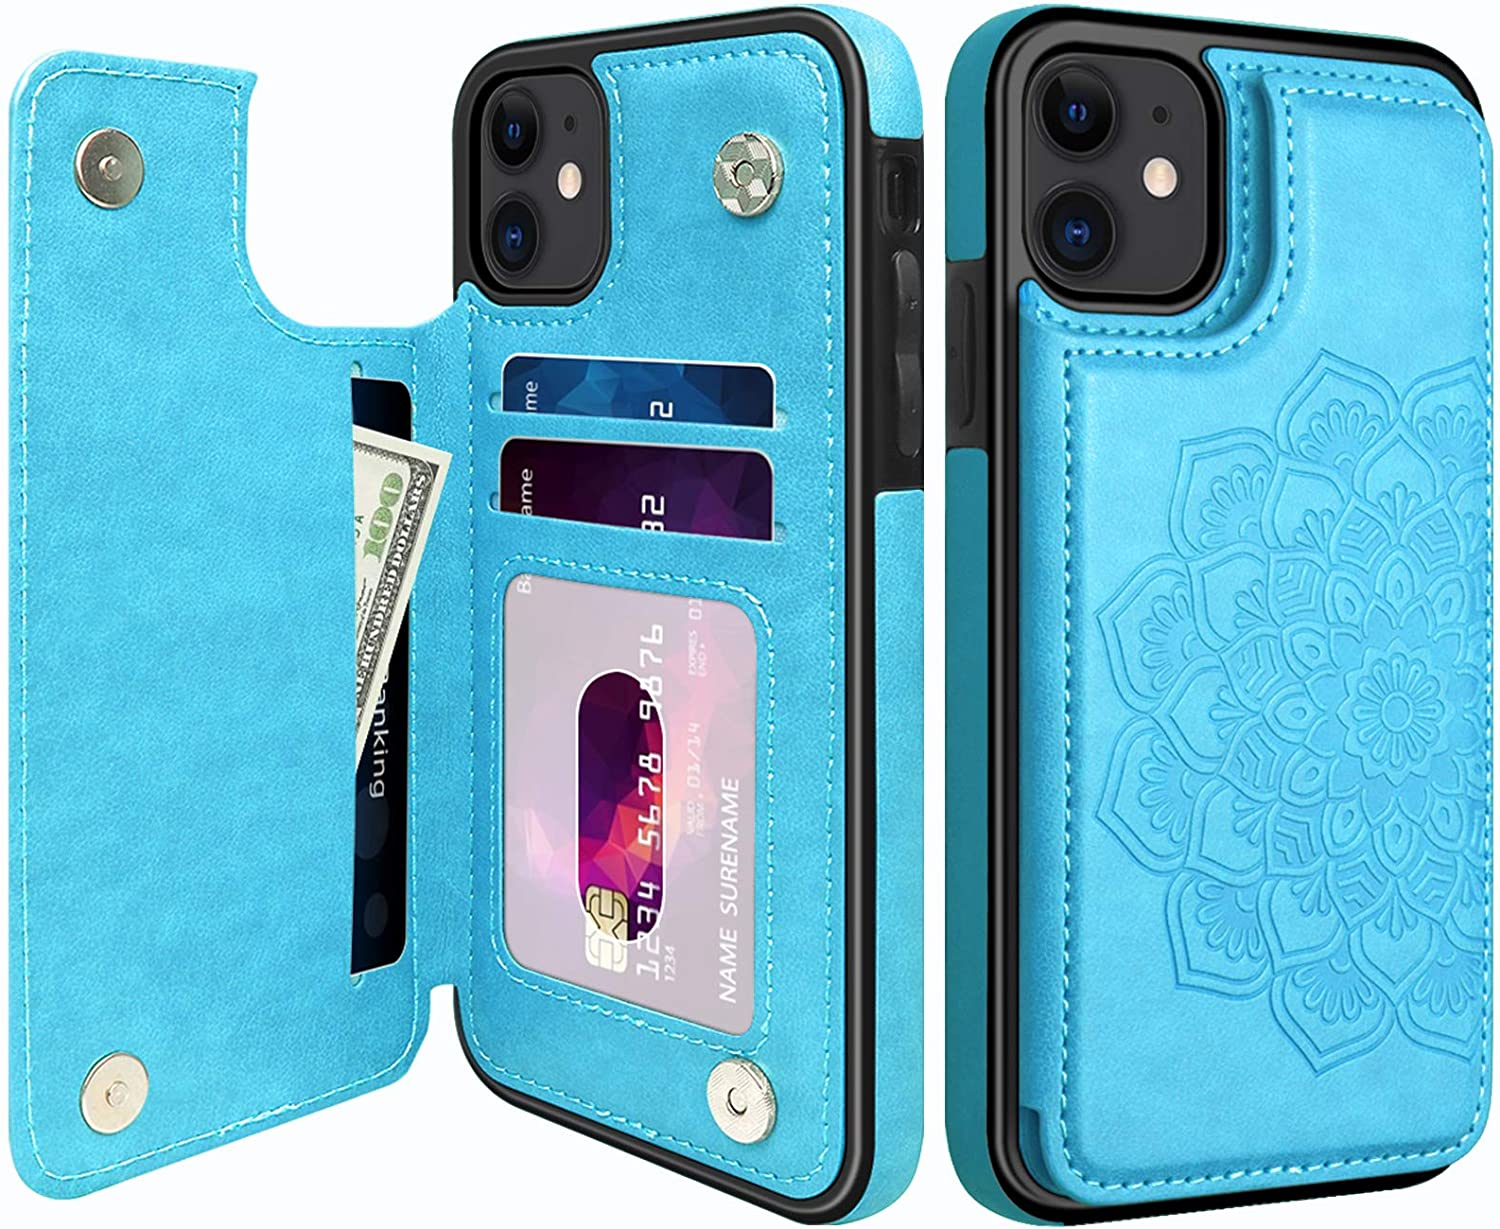 MMHUO for iPhone 11 Case, Elegant Flower Magnetic Flip Leather Wallet Case for iPhone 11 with Card Holder for Womewn Girls, Durable Shockproof Protective Phone Cases for iPhone 11 6.1 inches (Blue)